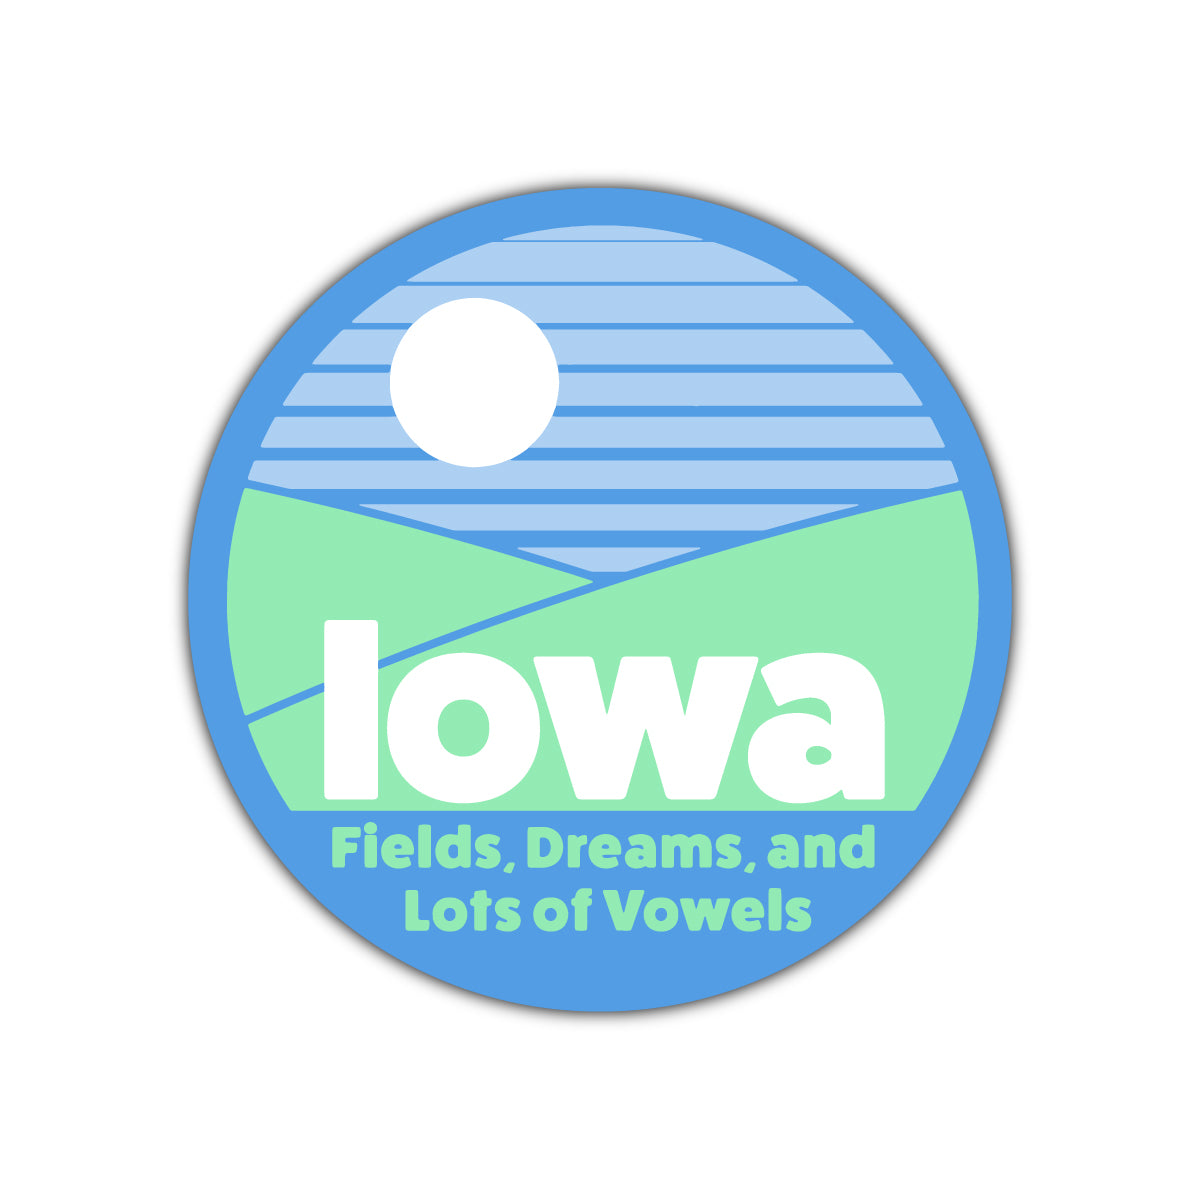 Iowa Fields, Dreams, and Lots of Vowels